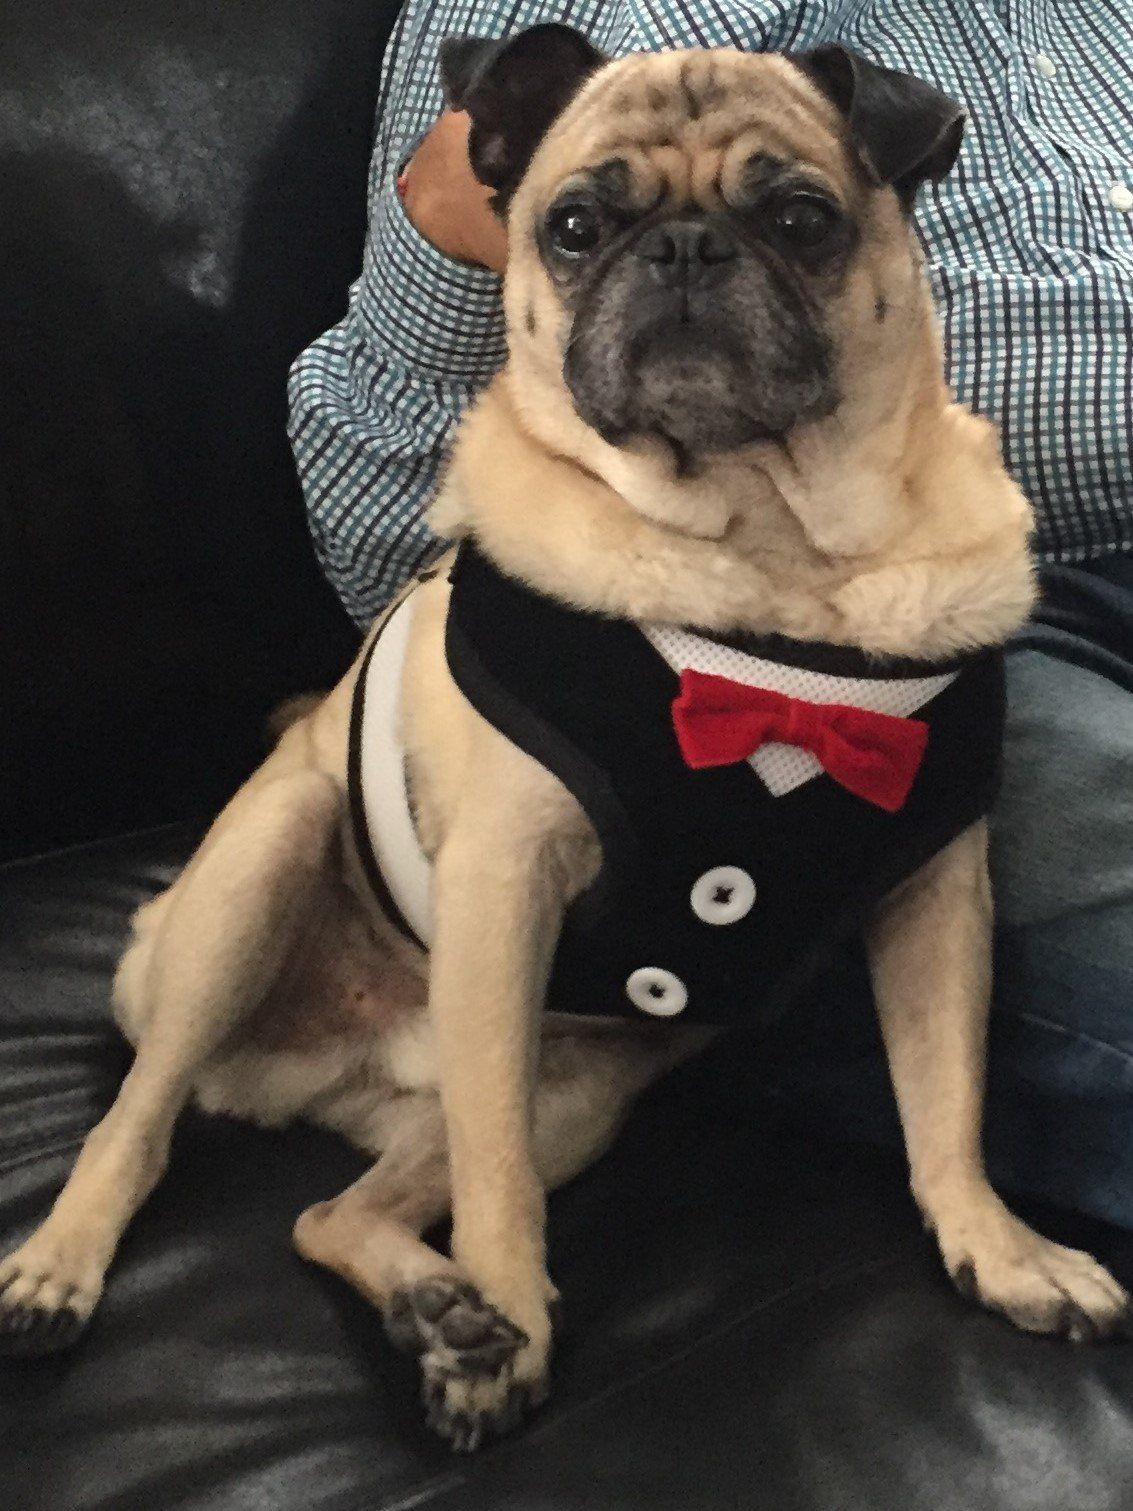 Larry The Pug Products Pug Puppies Pugs Baby Pug Dog